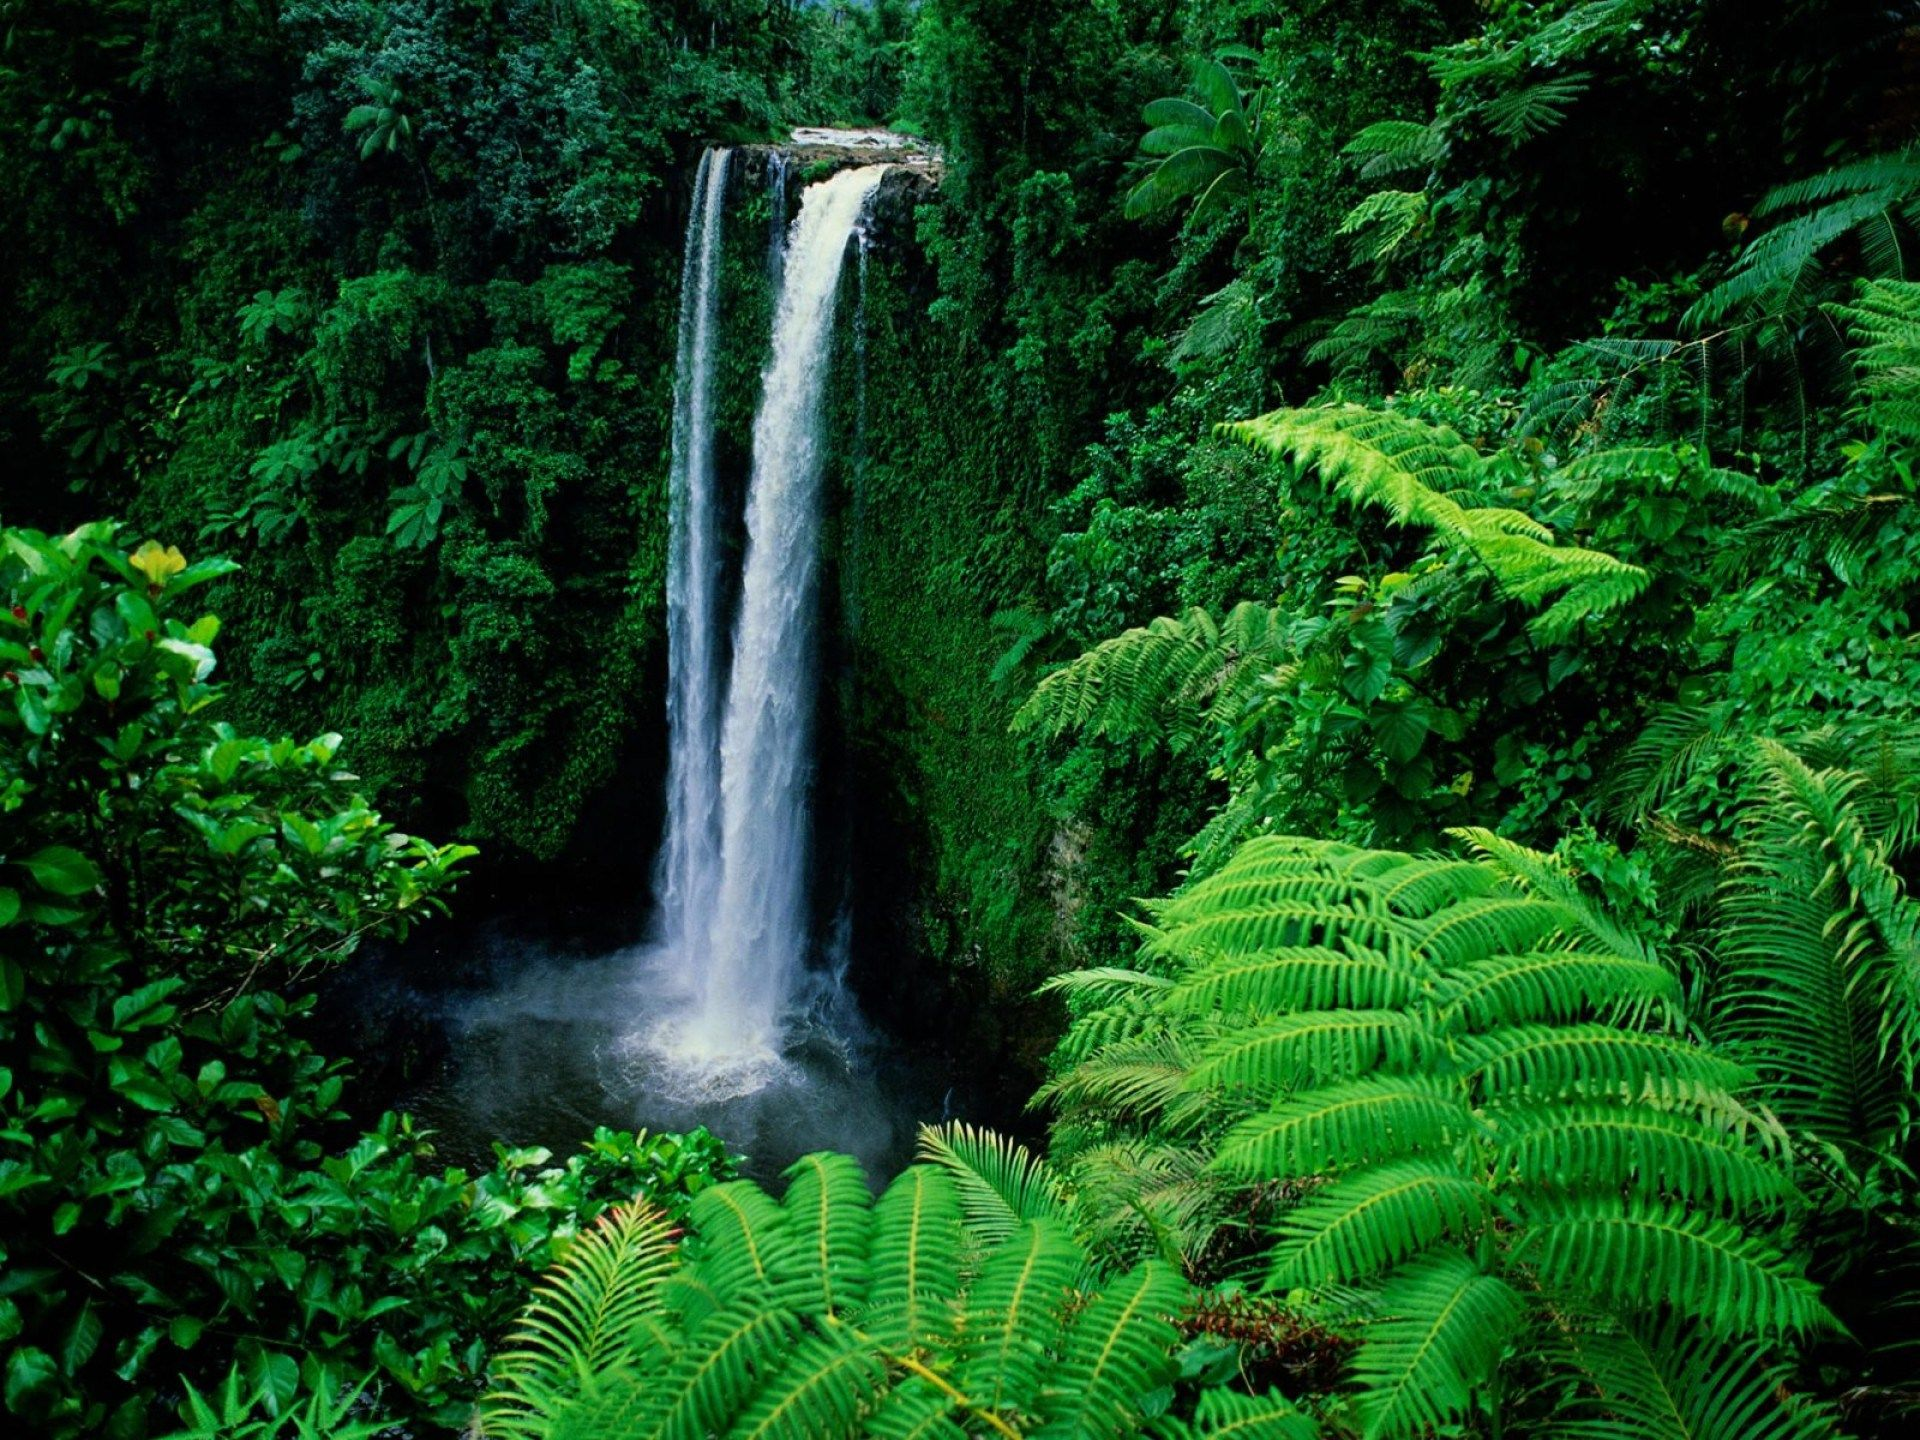 Waterfall Hd Wallpapers 1080p High Quality Waterfall Wallpaper Waterfall Beautiful Waterfalls